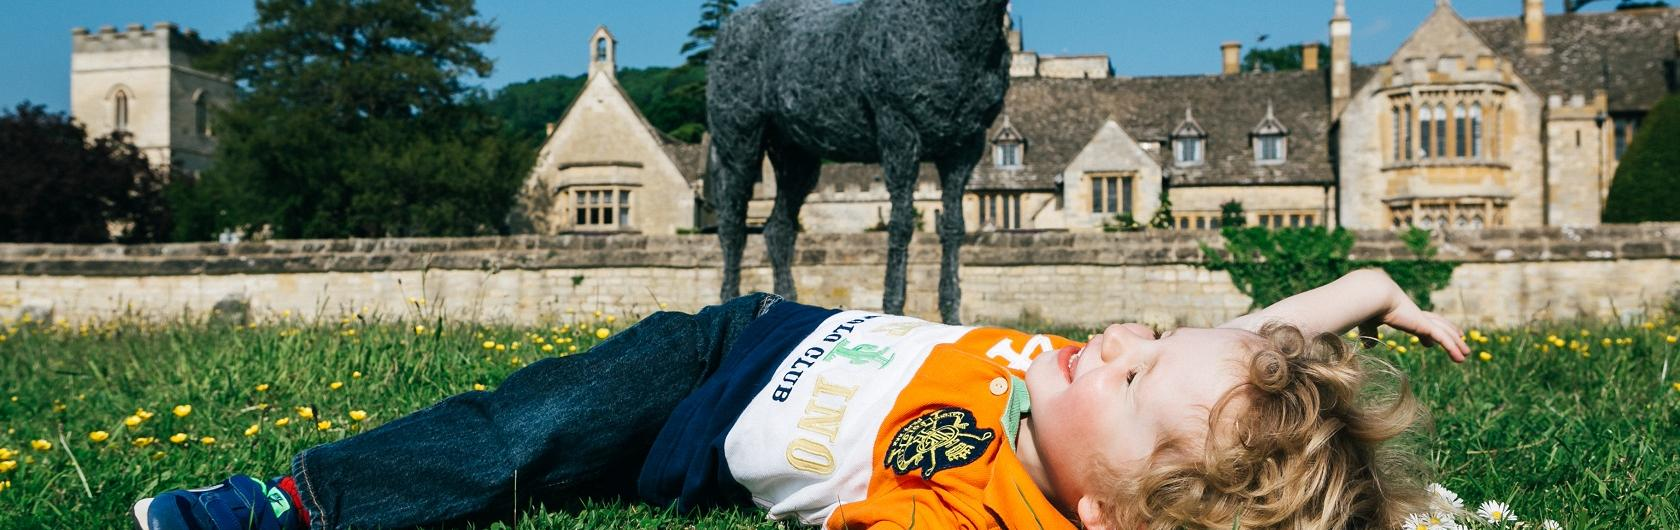 Child in front of Cotswold hotel